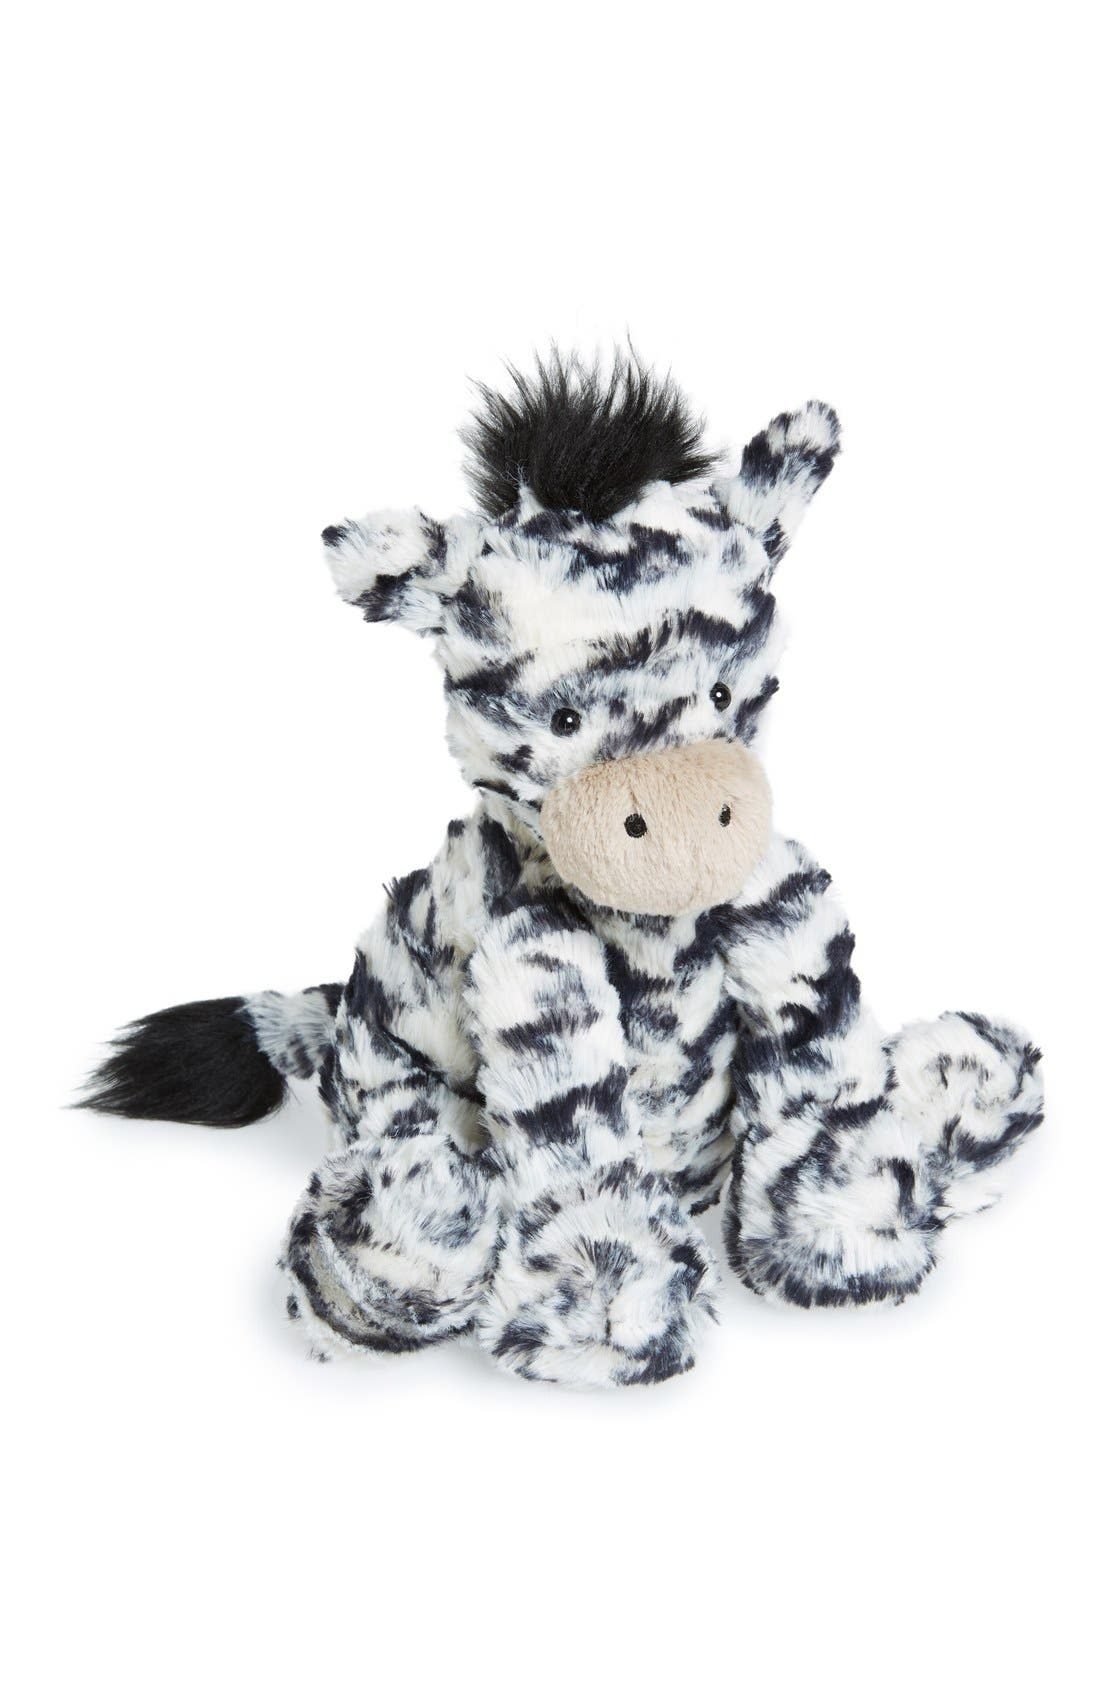 Jellycat 'Fuddlewuddle Zebra' Stuffed Animal